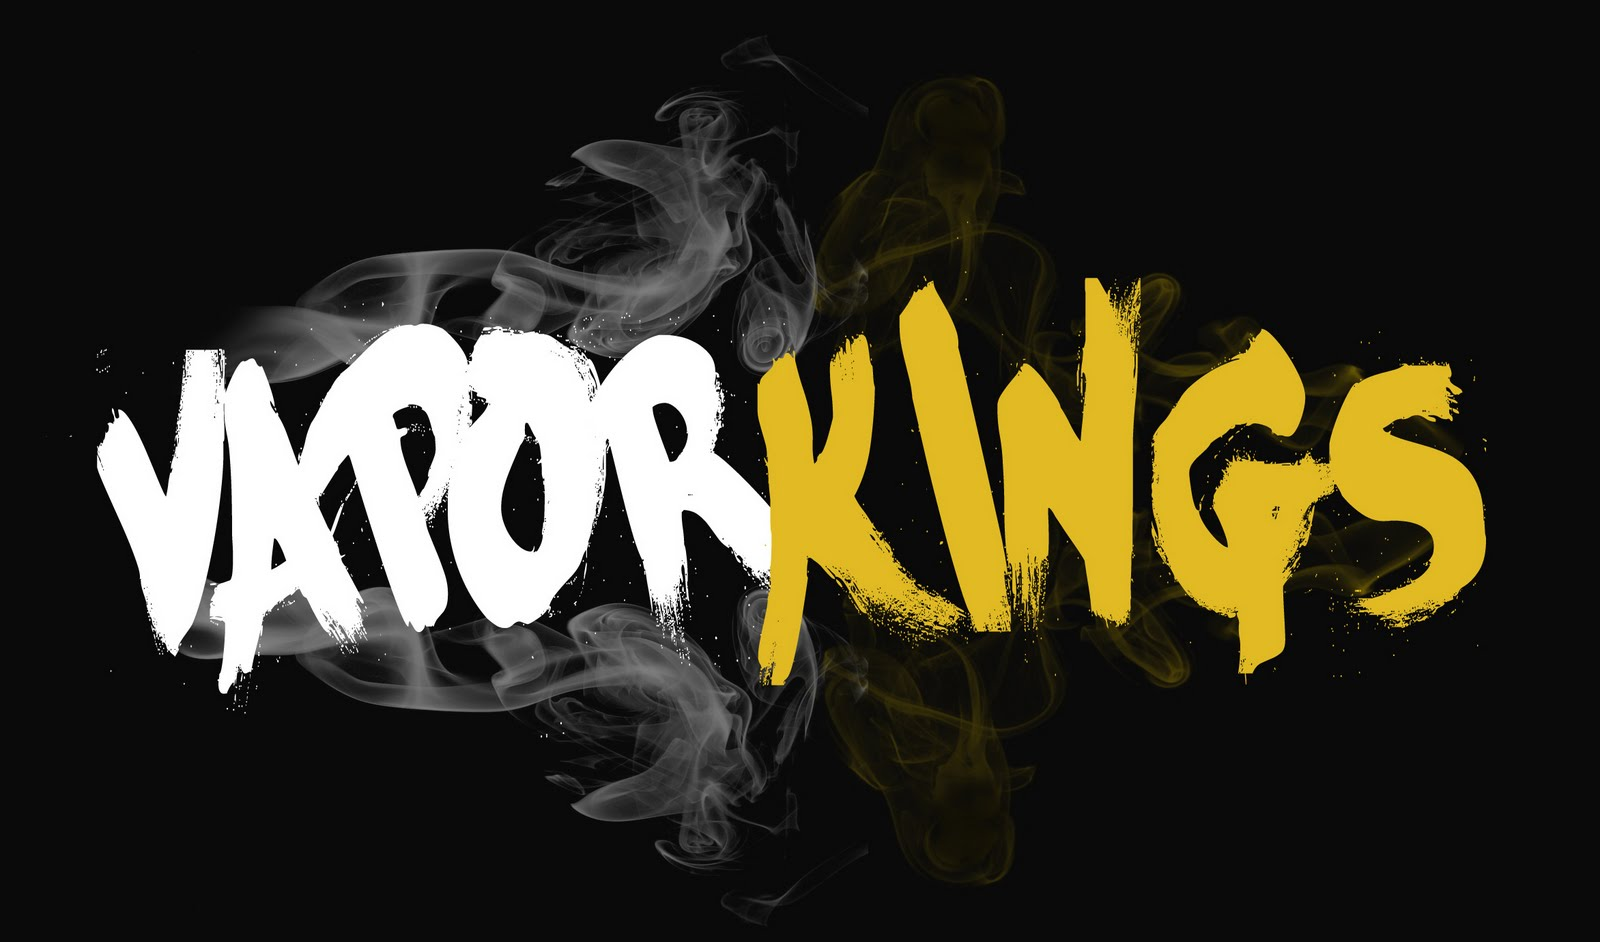 VaporKings.com electronic cigarette supplies store and Tulsa e-Cigarette retail store/vaping lounge